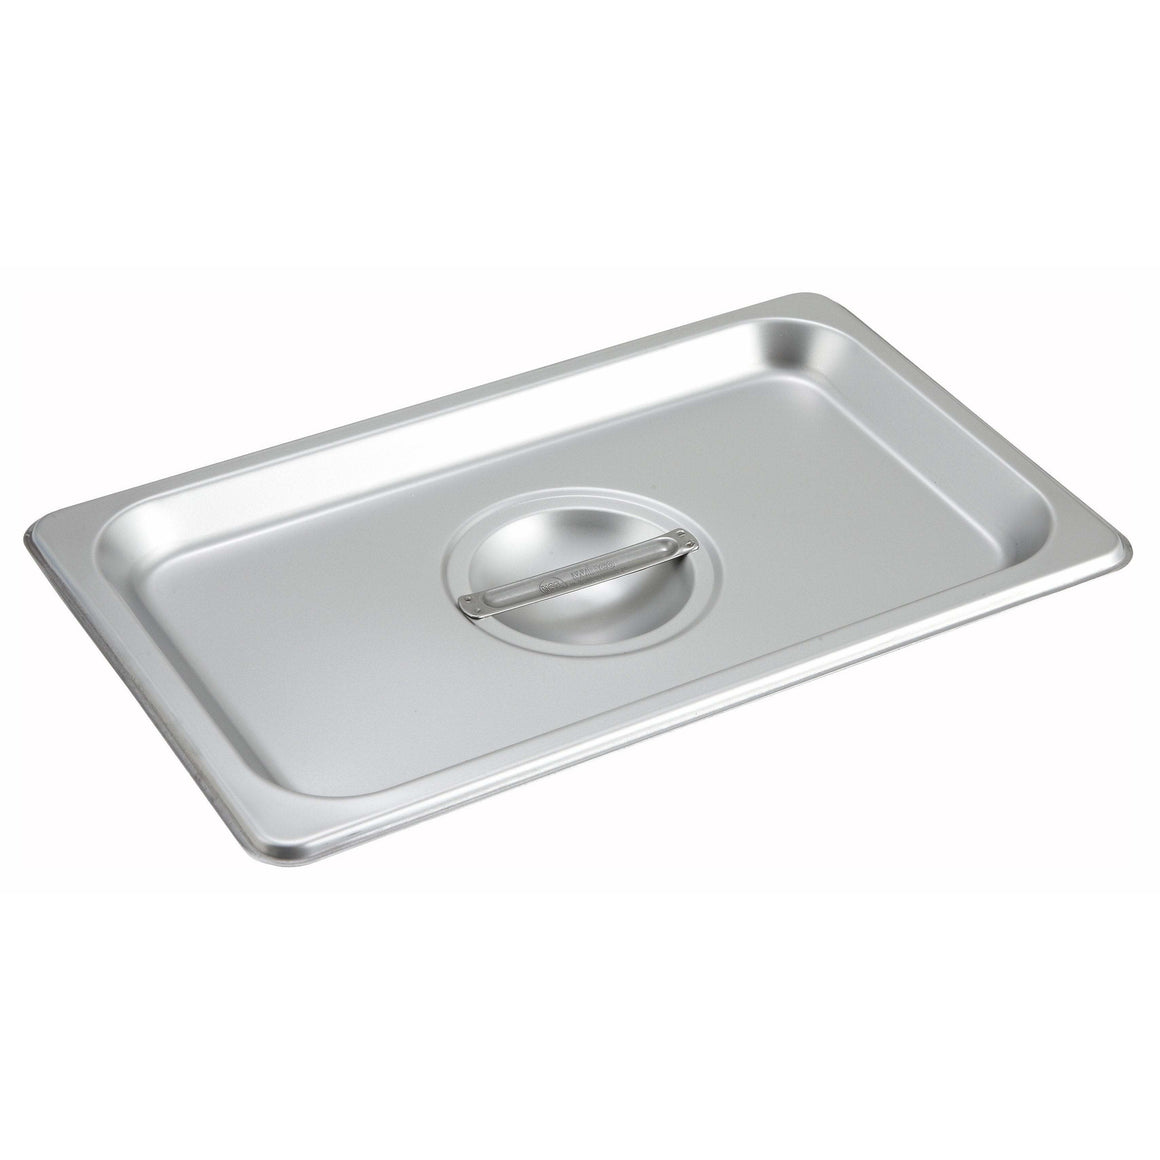 Winco - SPSCQ - Stainless Steel Steam Pan Cover, 1/4 Size, Solid - Steam Table